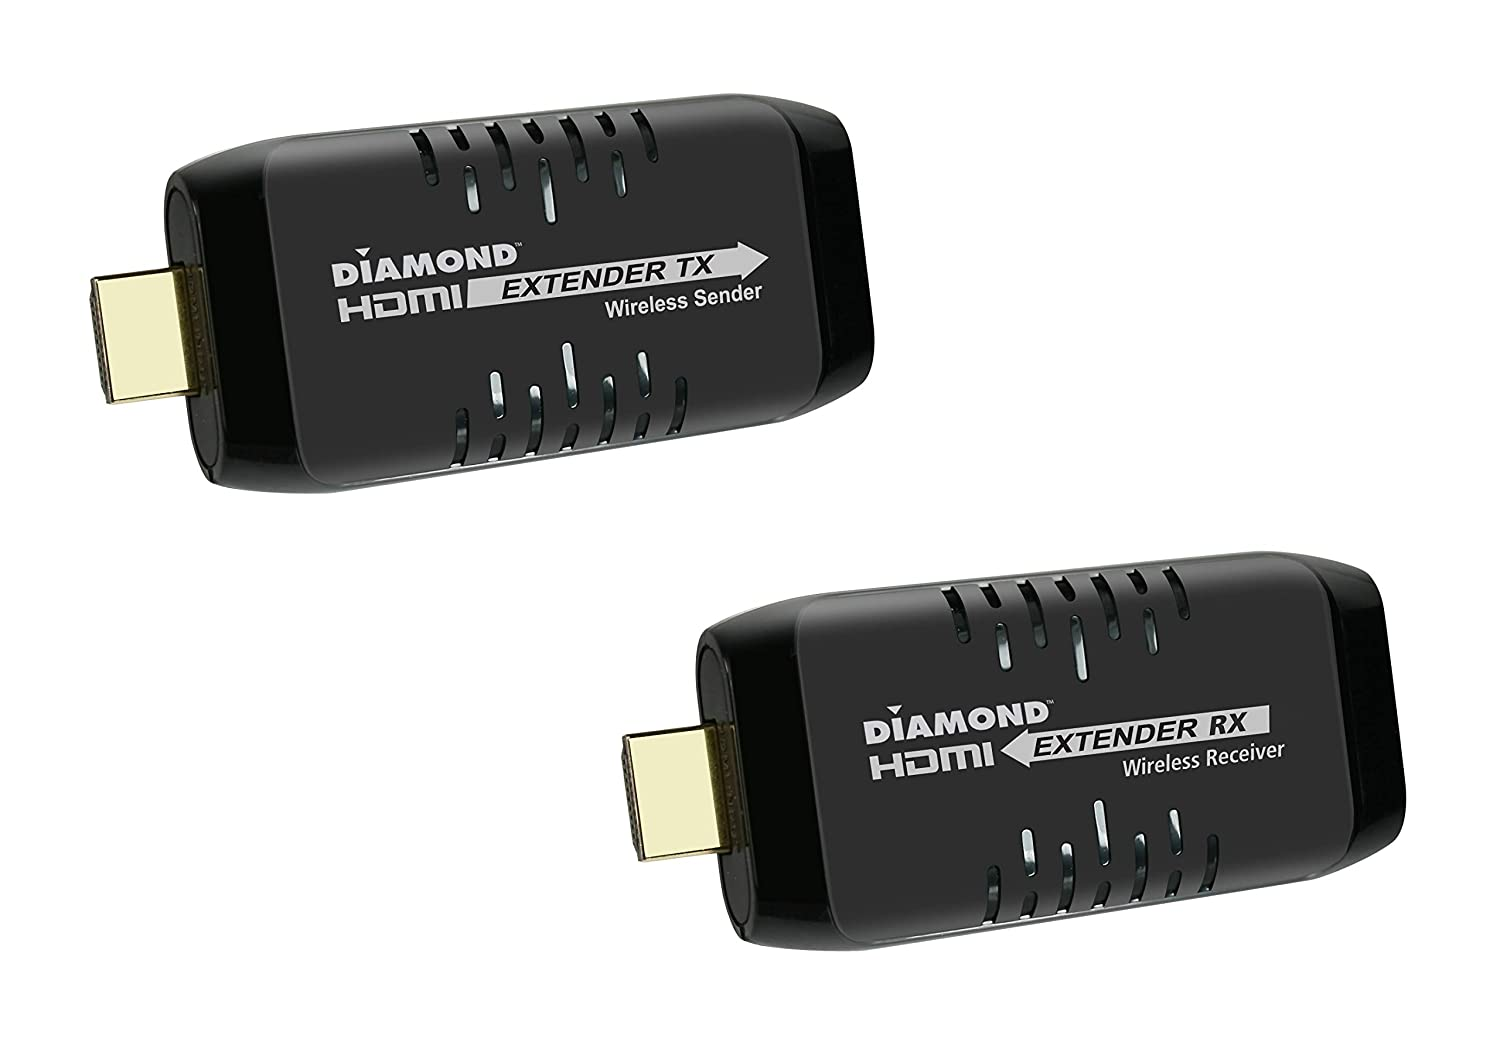 Diamond Multimedia Wireless HDMI USB Powered Extender Kit, TV Transmitter & Receiver for HD 1080p, Stream Video and Audio from: Laptops, PC, Cable Box, Satellite Box, Blu-ray, DVD, PS4, Xbox (VS50)